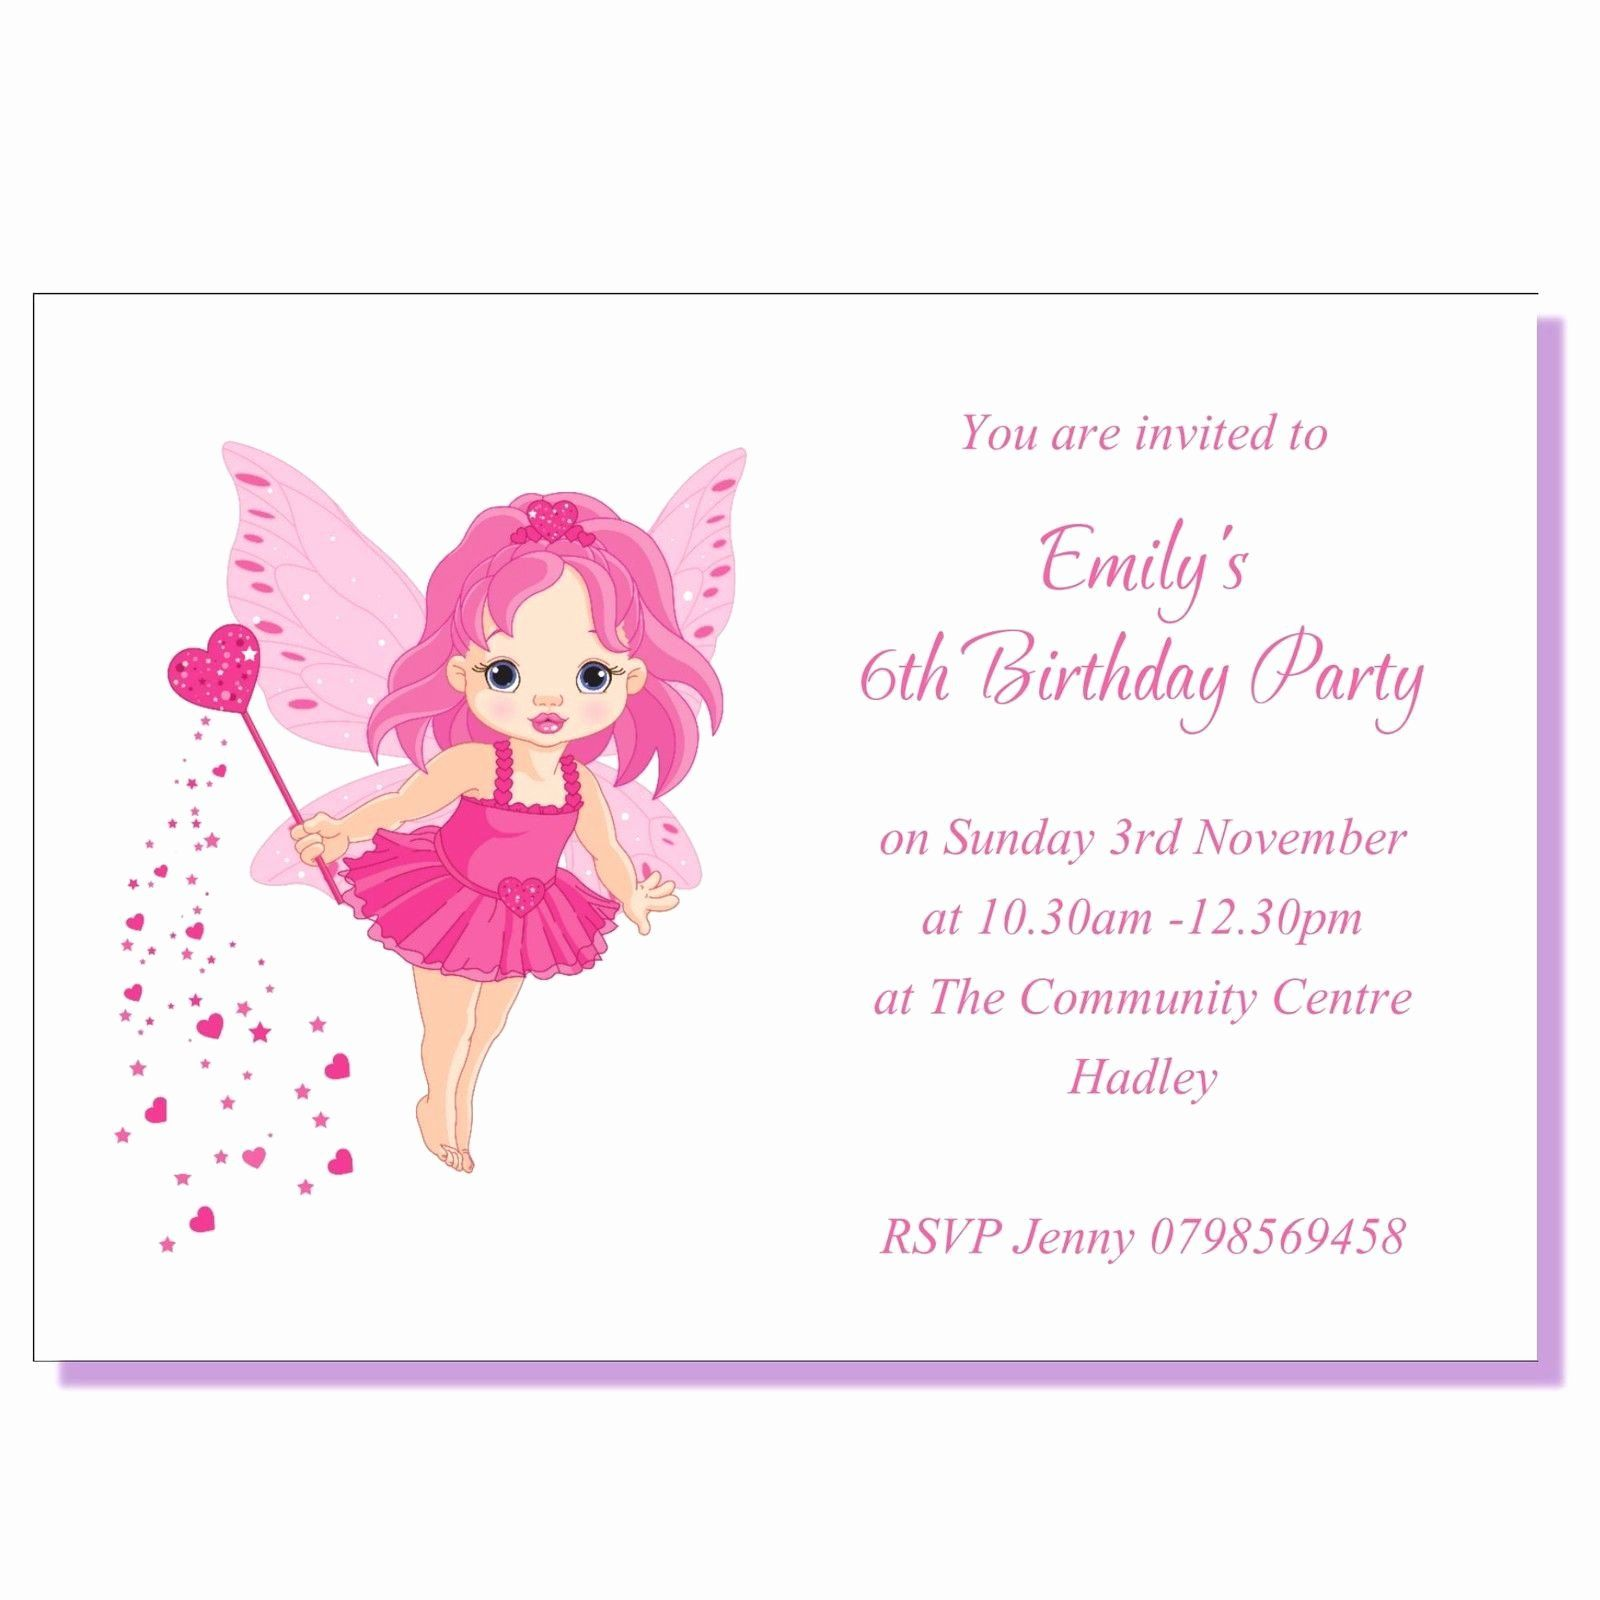 Toddler Birthday Party Invitation Wording In 2020 Birthday Invitation Message Invitation Card Birthday Bday Party Invitations